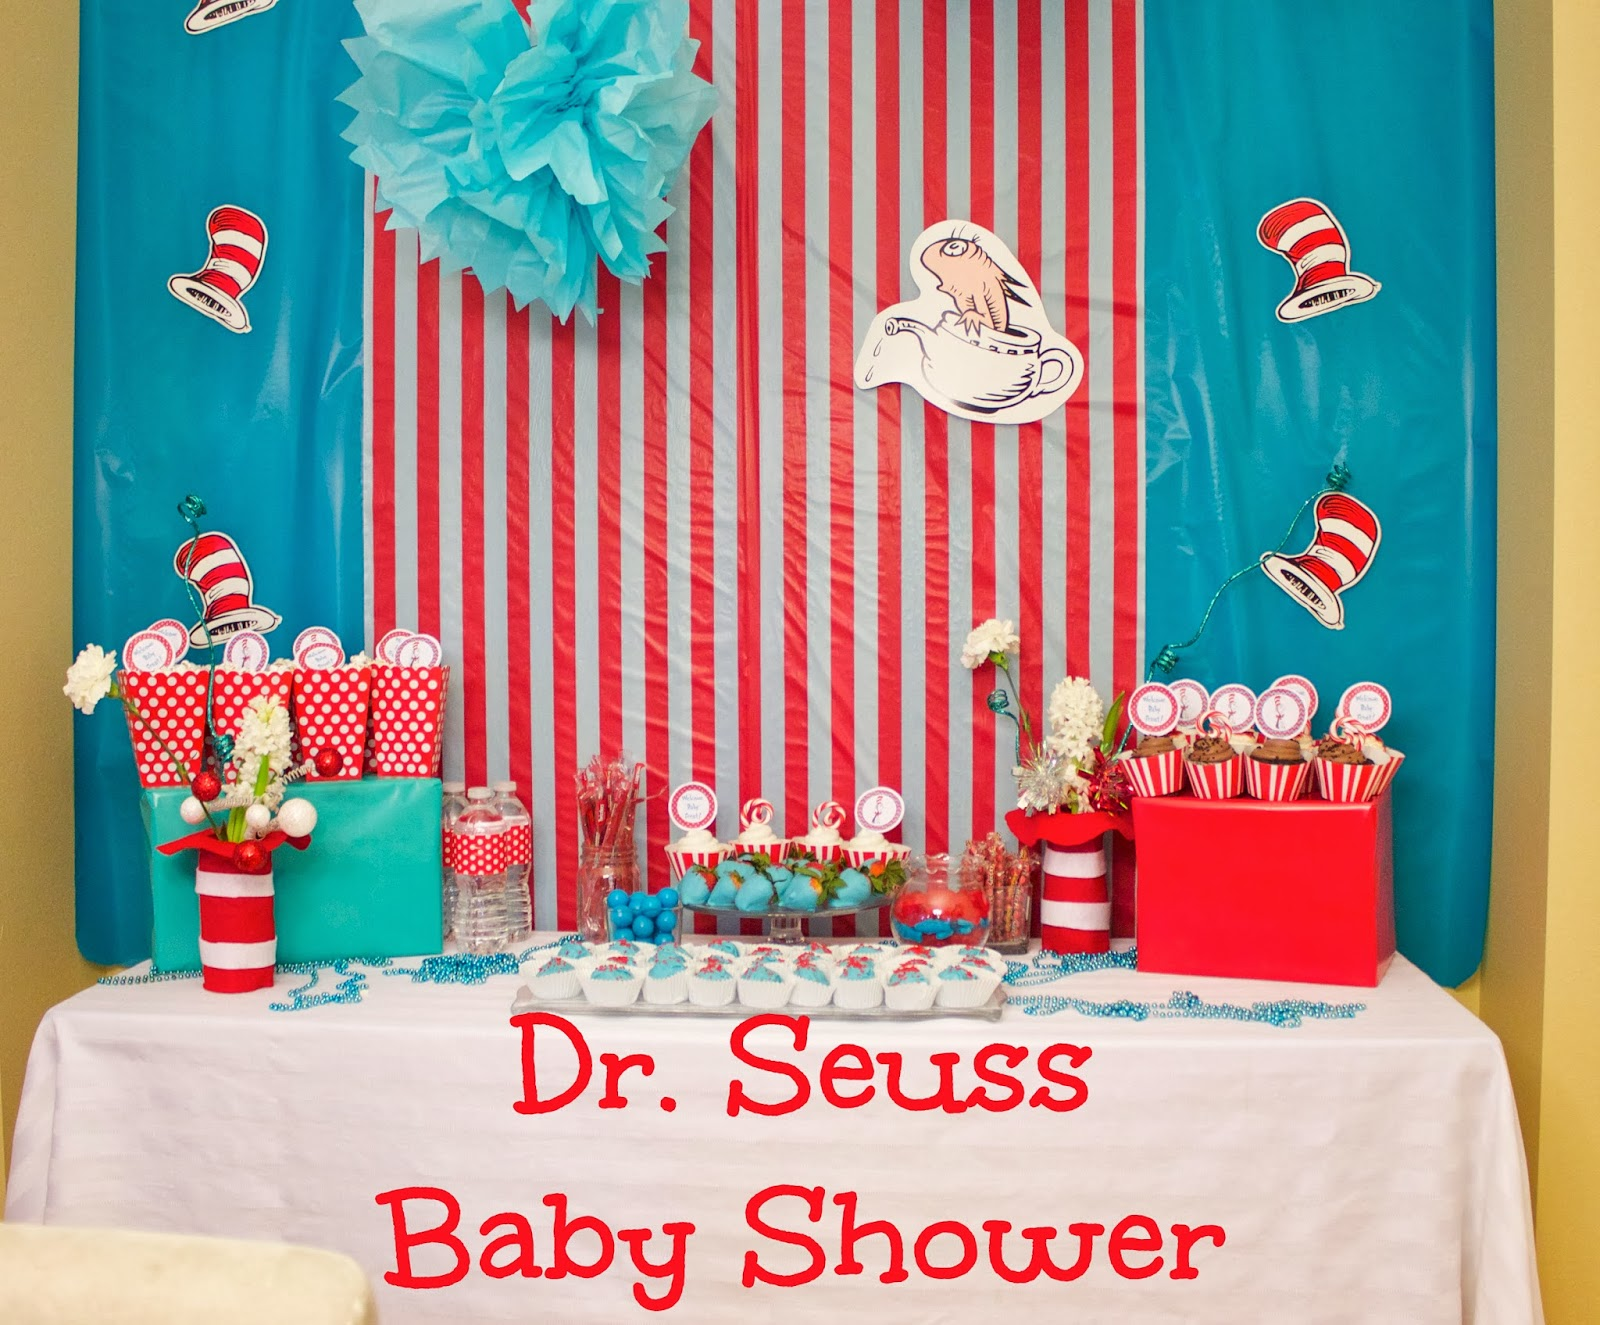 dr seuss baby shower ideas dr seuss food idea 39 s baby shower ideas